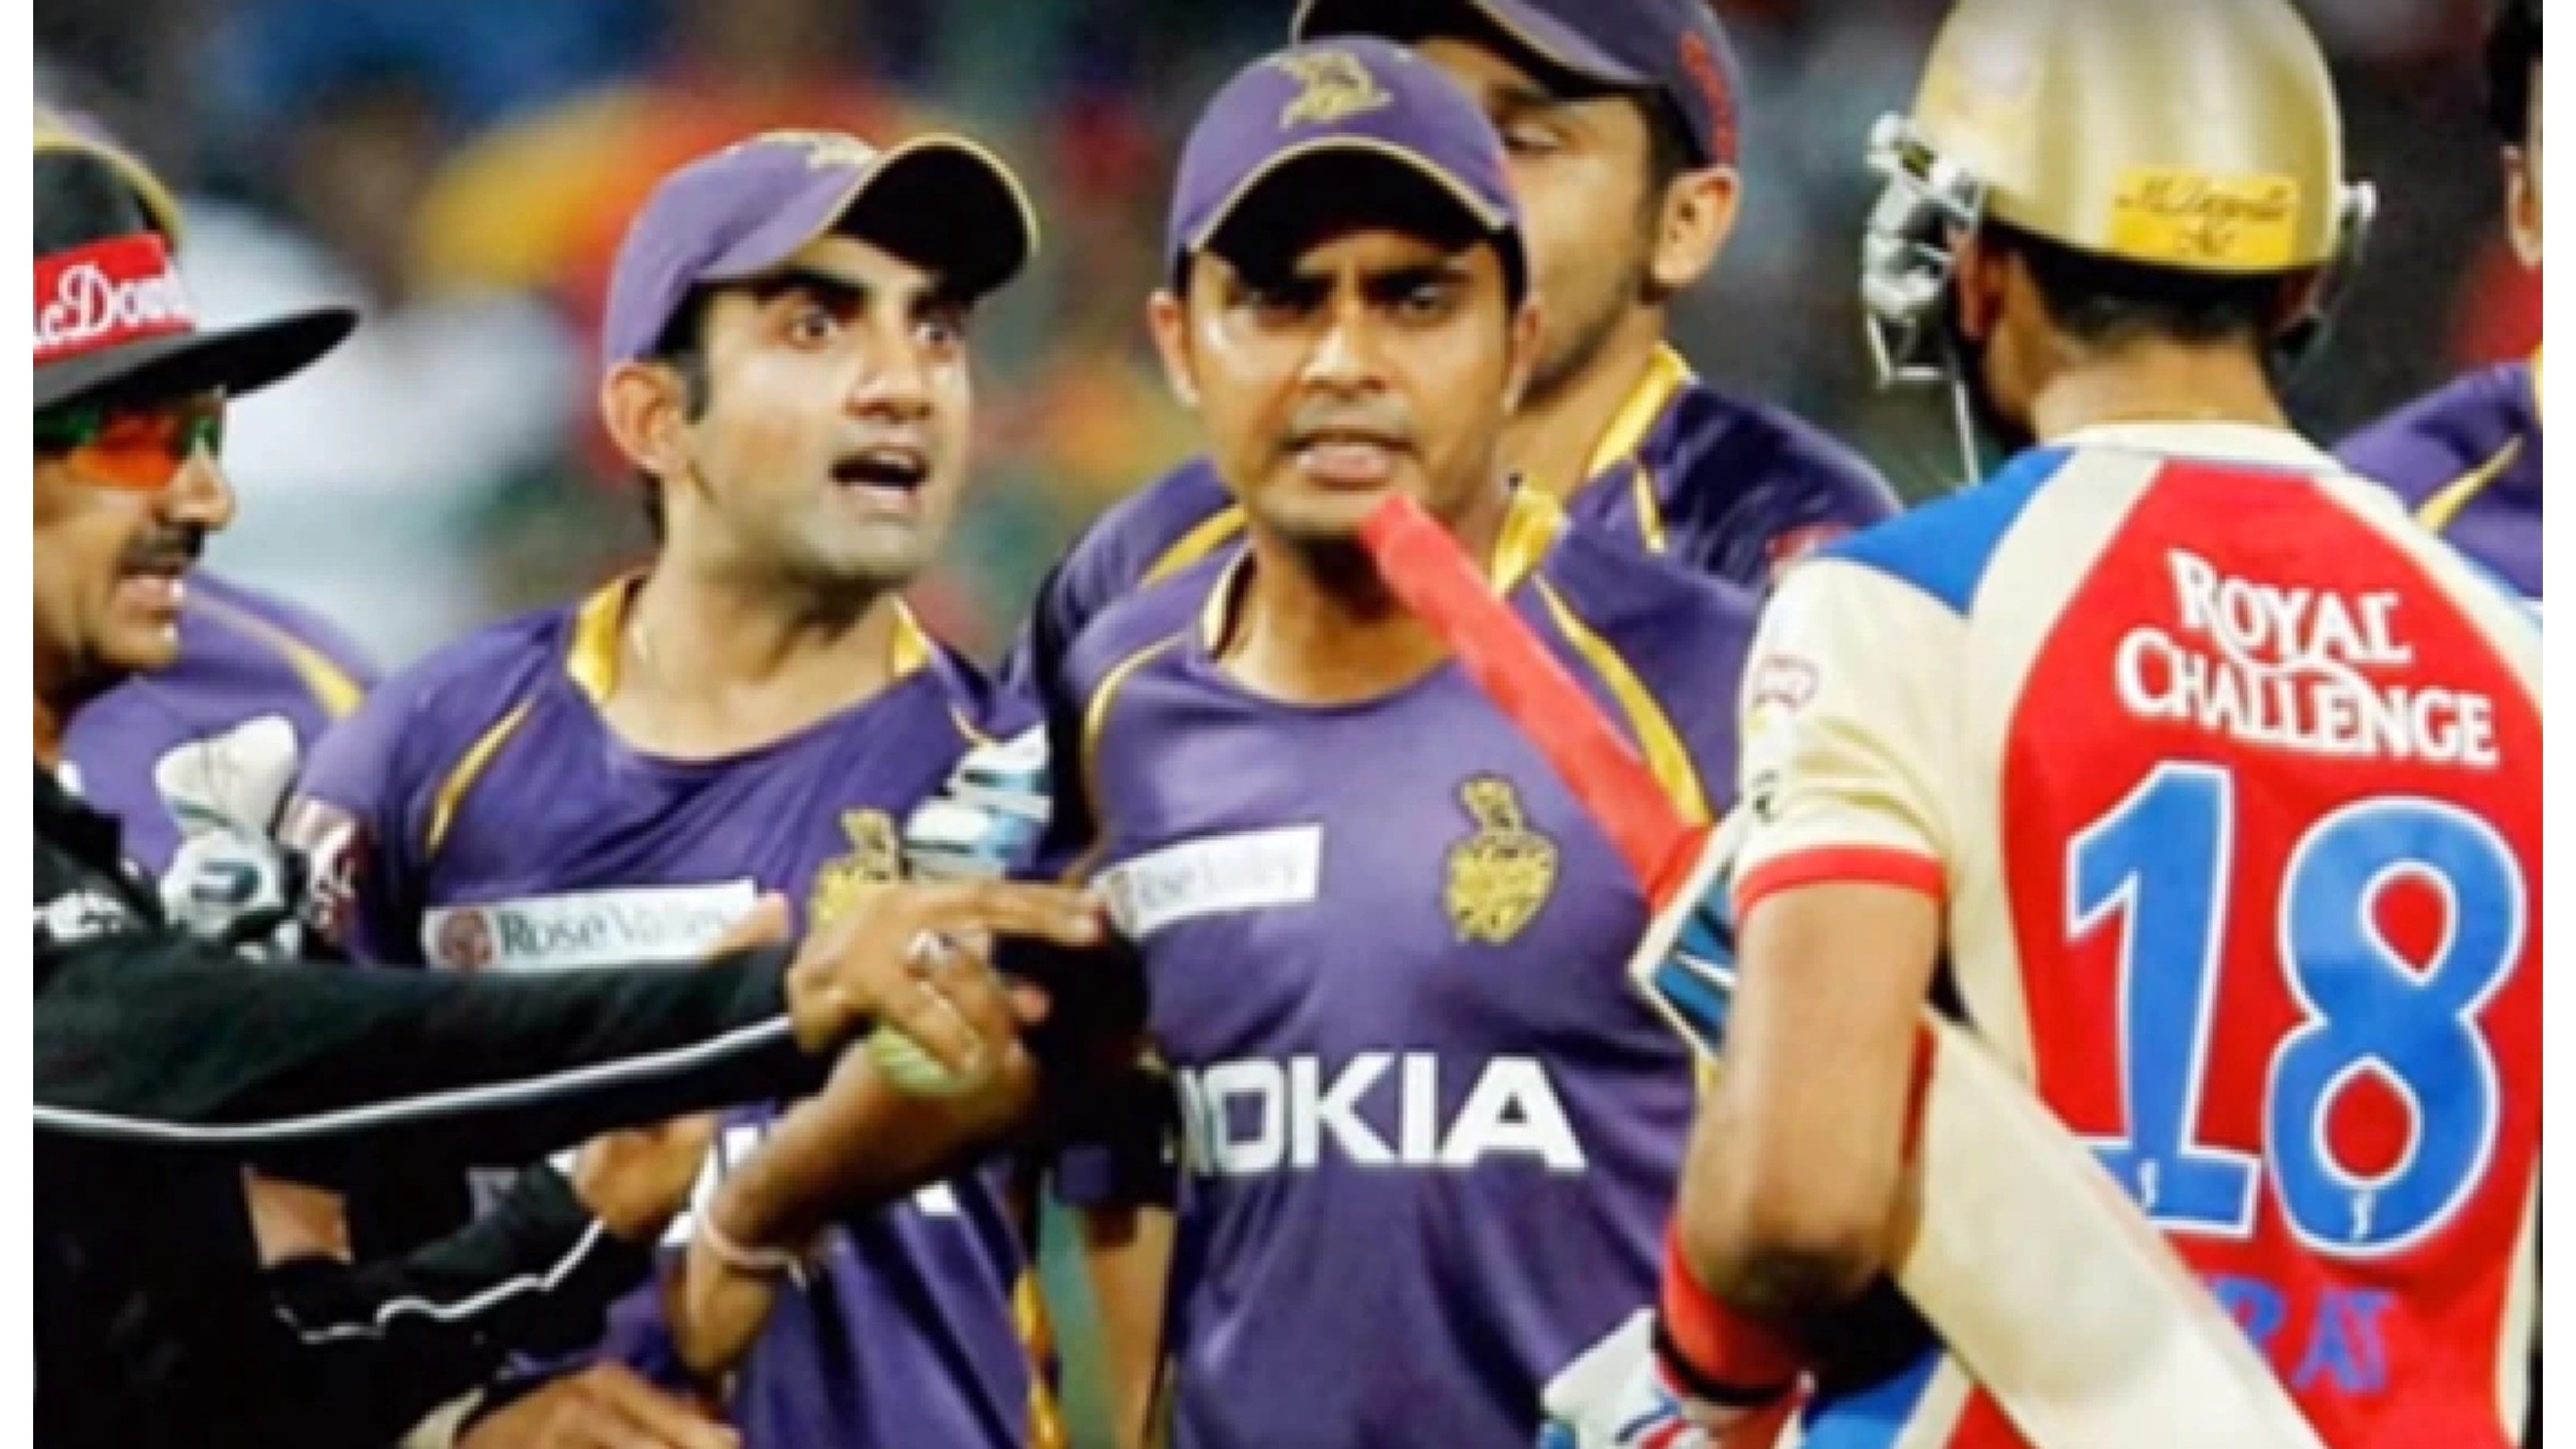 Rajat Bhatia opens up about the ugly on-field spat between Kohli and Gambhir in IPL 2013